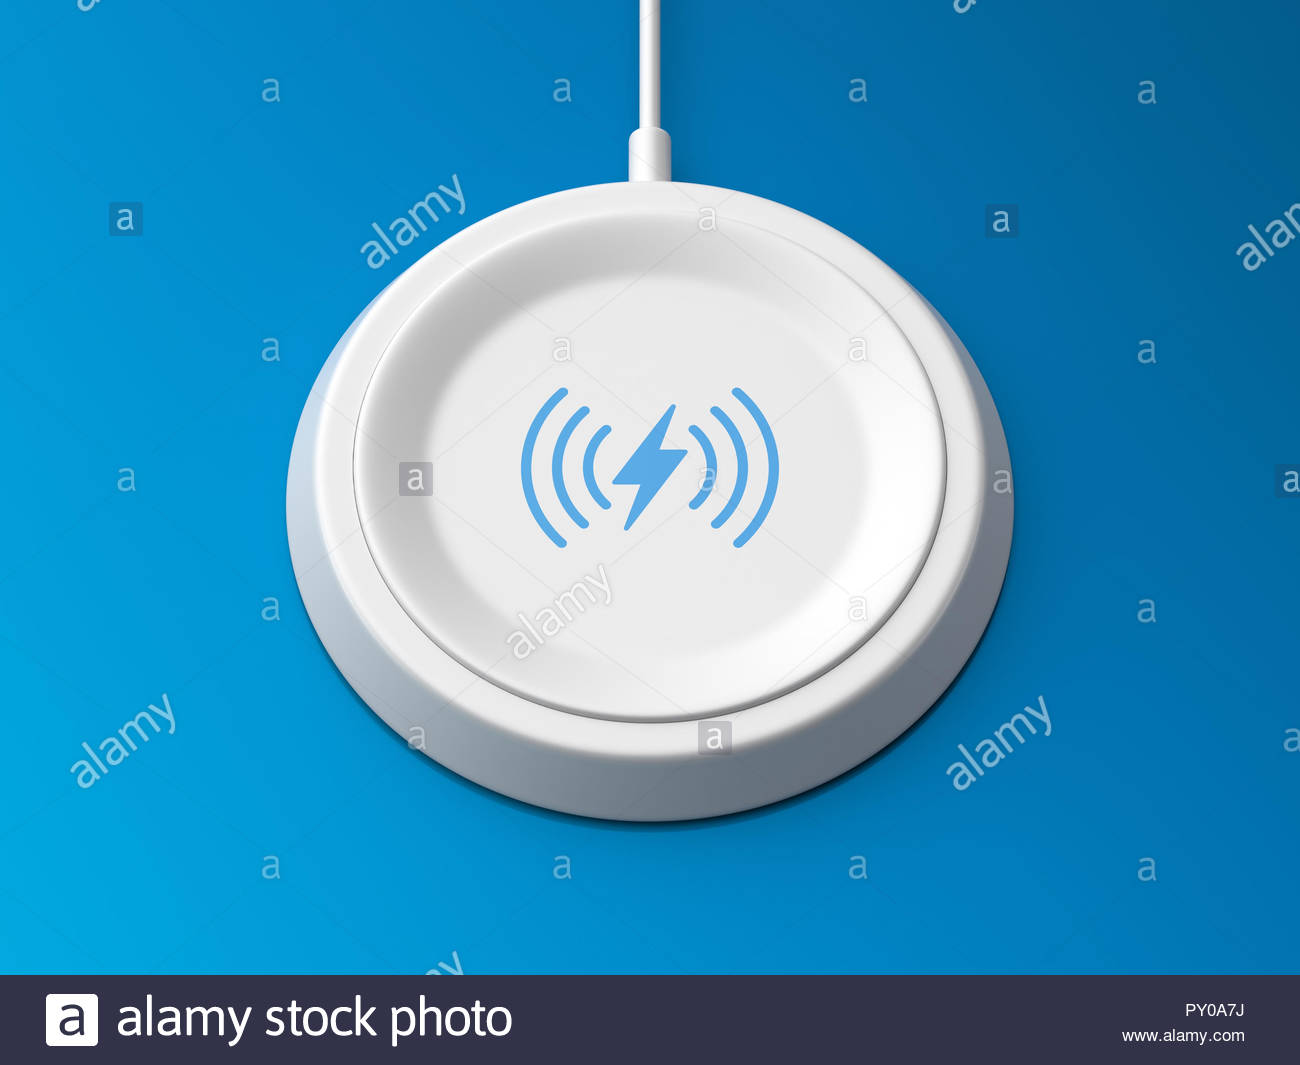 3d rendered angled view of a white wireless charger with a bevelled edge and recessed base on a blue background. - Stock Image